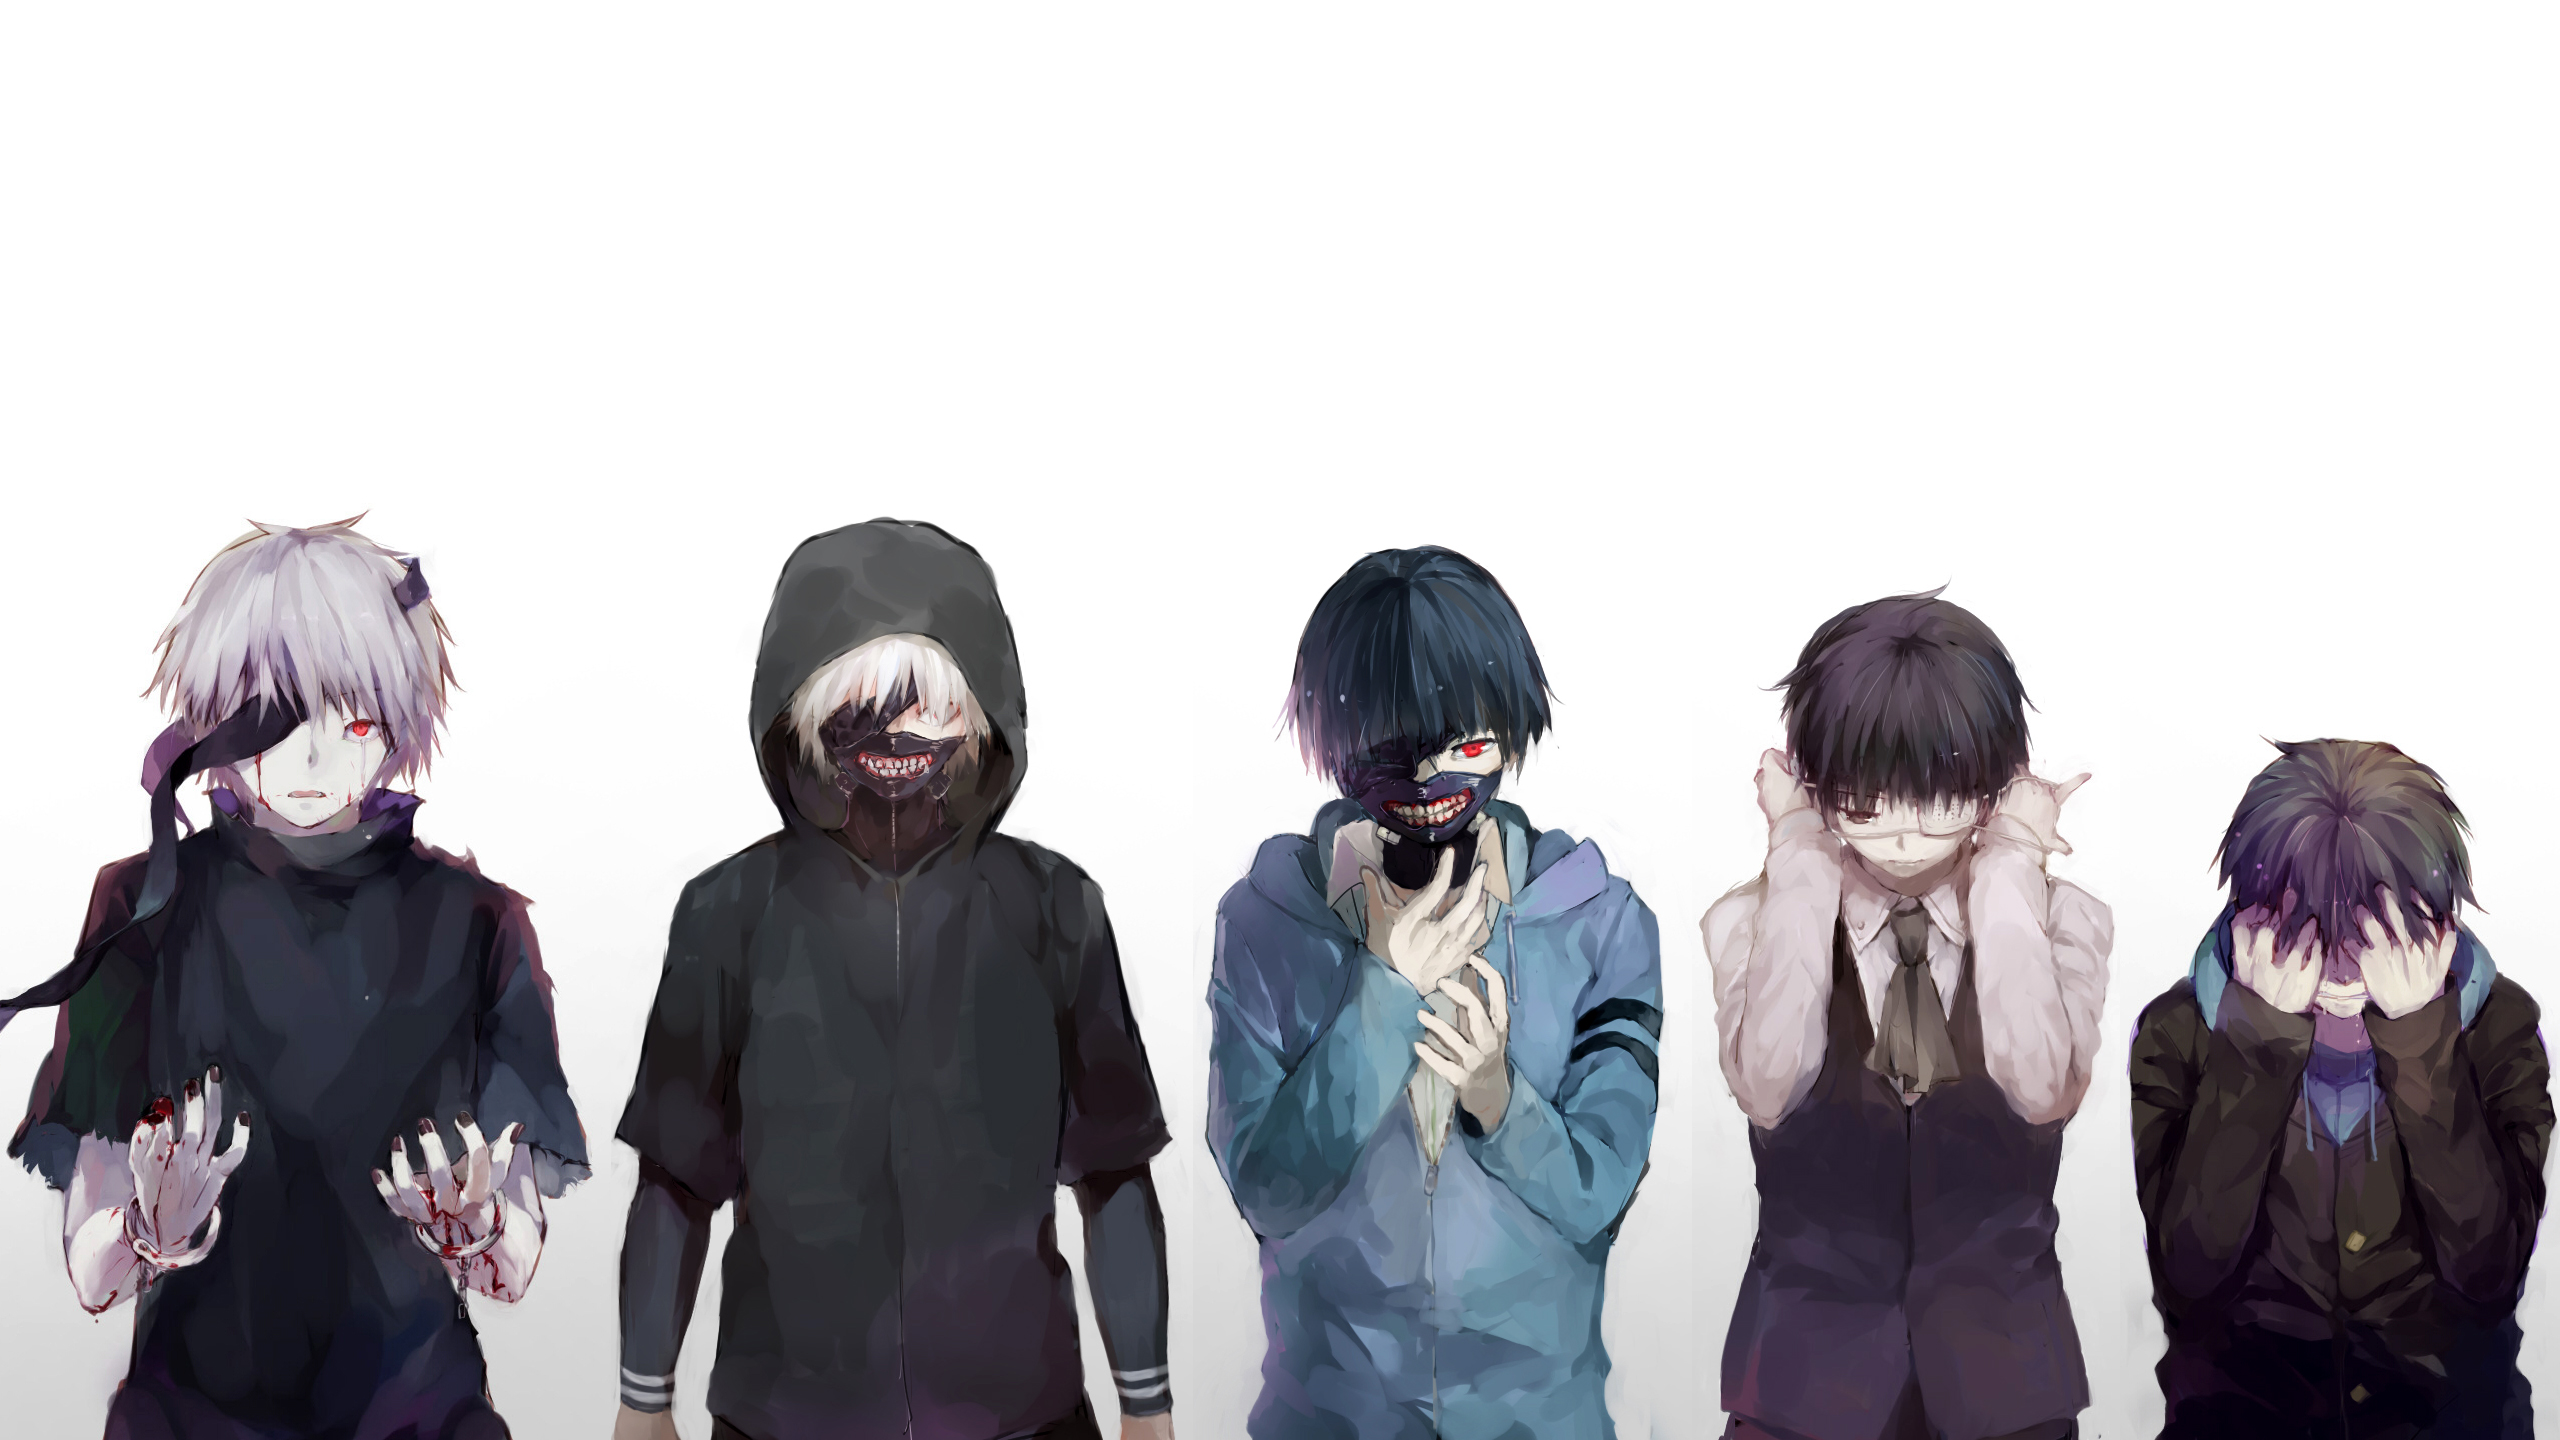 This-is-the-transformation-process-or-Ken-Kaneki-the-main-character-of-Tokyo-Ghoul-from-the-first-t-wallpaper-wpc9009957